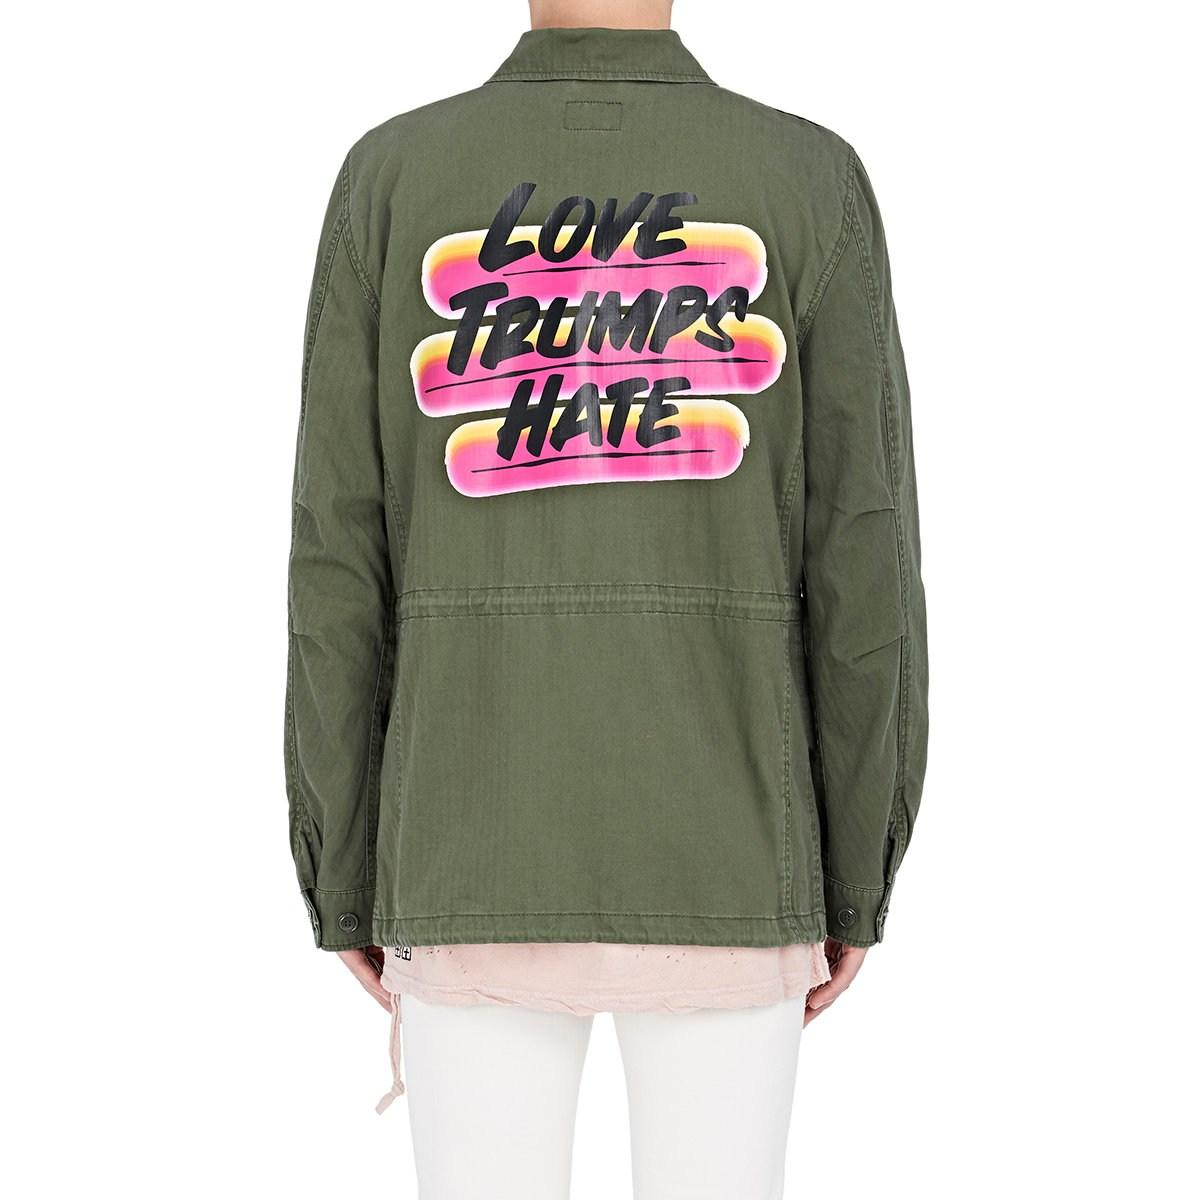 1cb34ff3 Alpha Industries M-65 Defender love Trumps Hate Field Jacket in ...